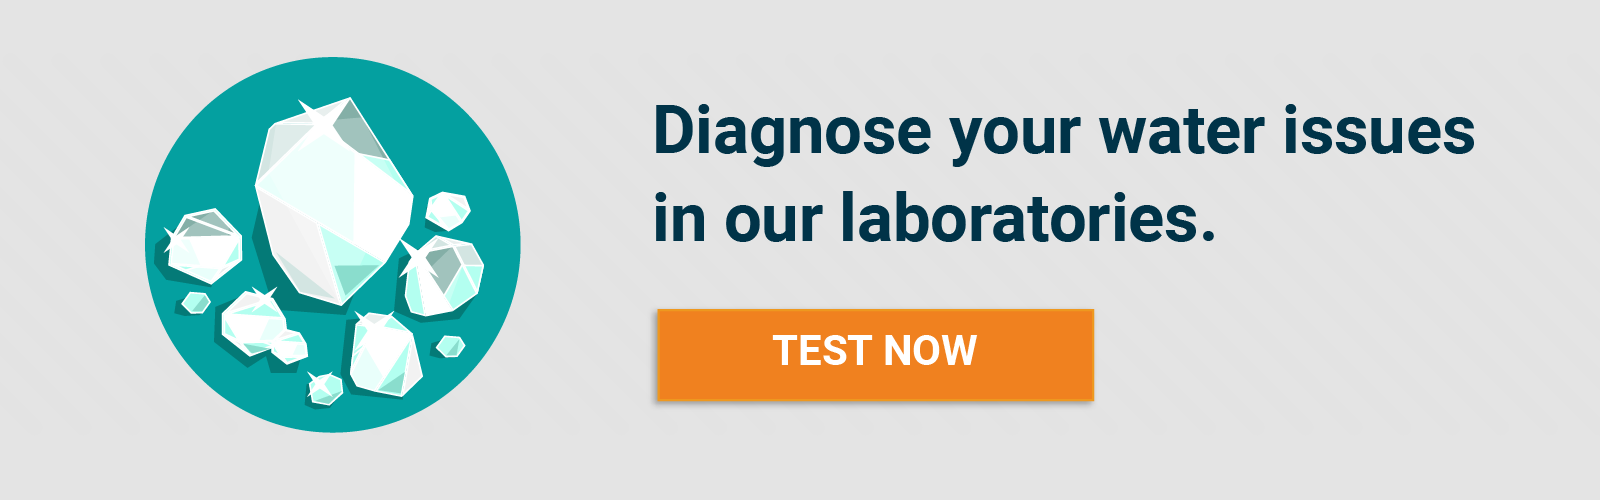 Test your water in a certified laboratory